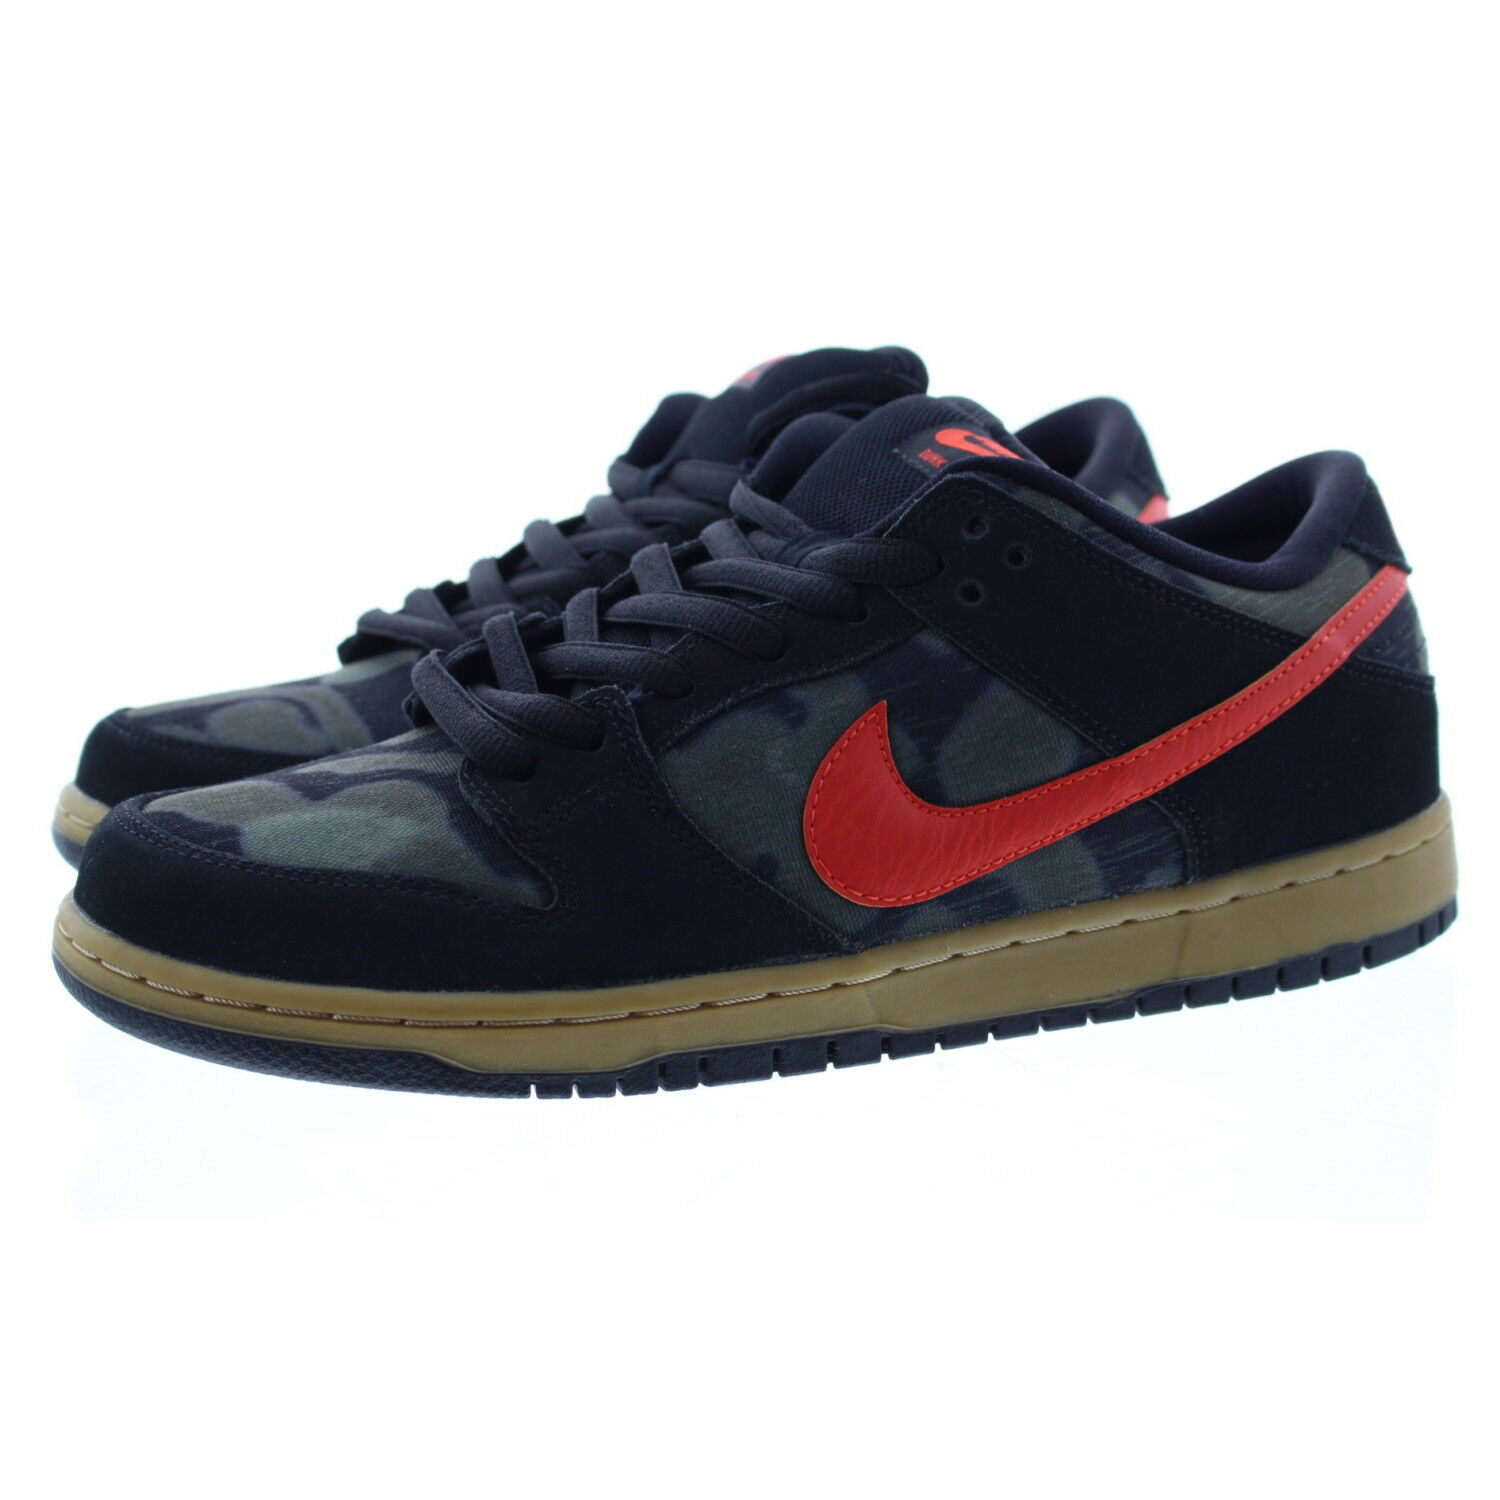 Nike 313170 Men's Dunk Low Top Premium Skateboarding Shoes Sneakers, Camo